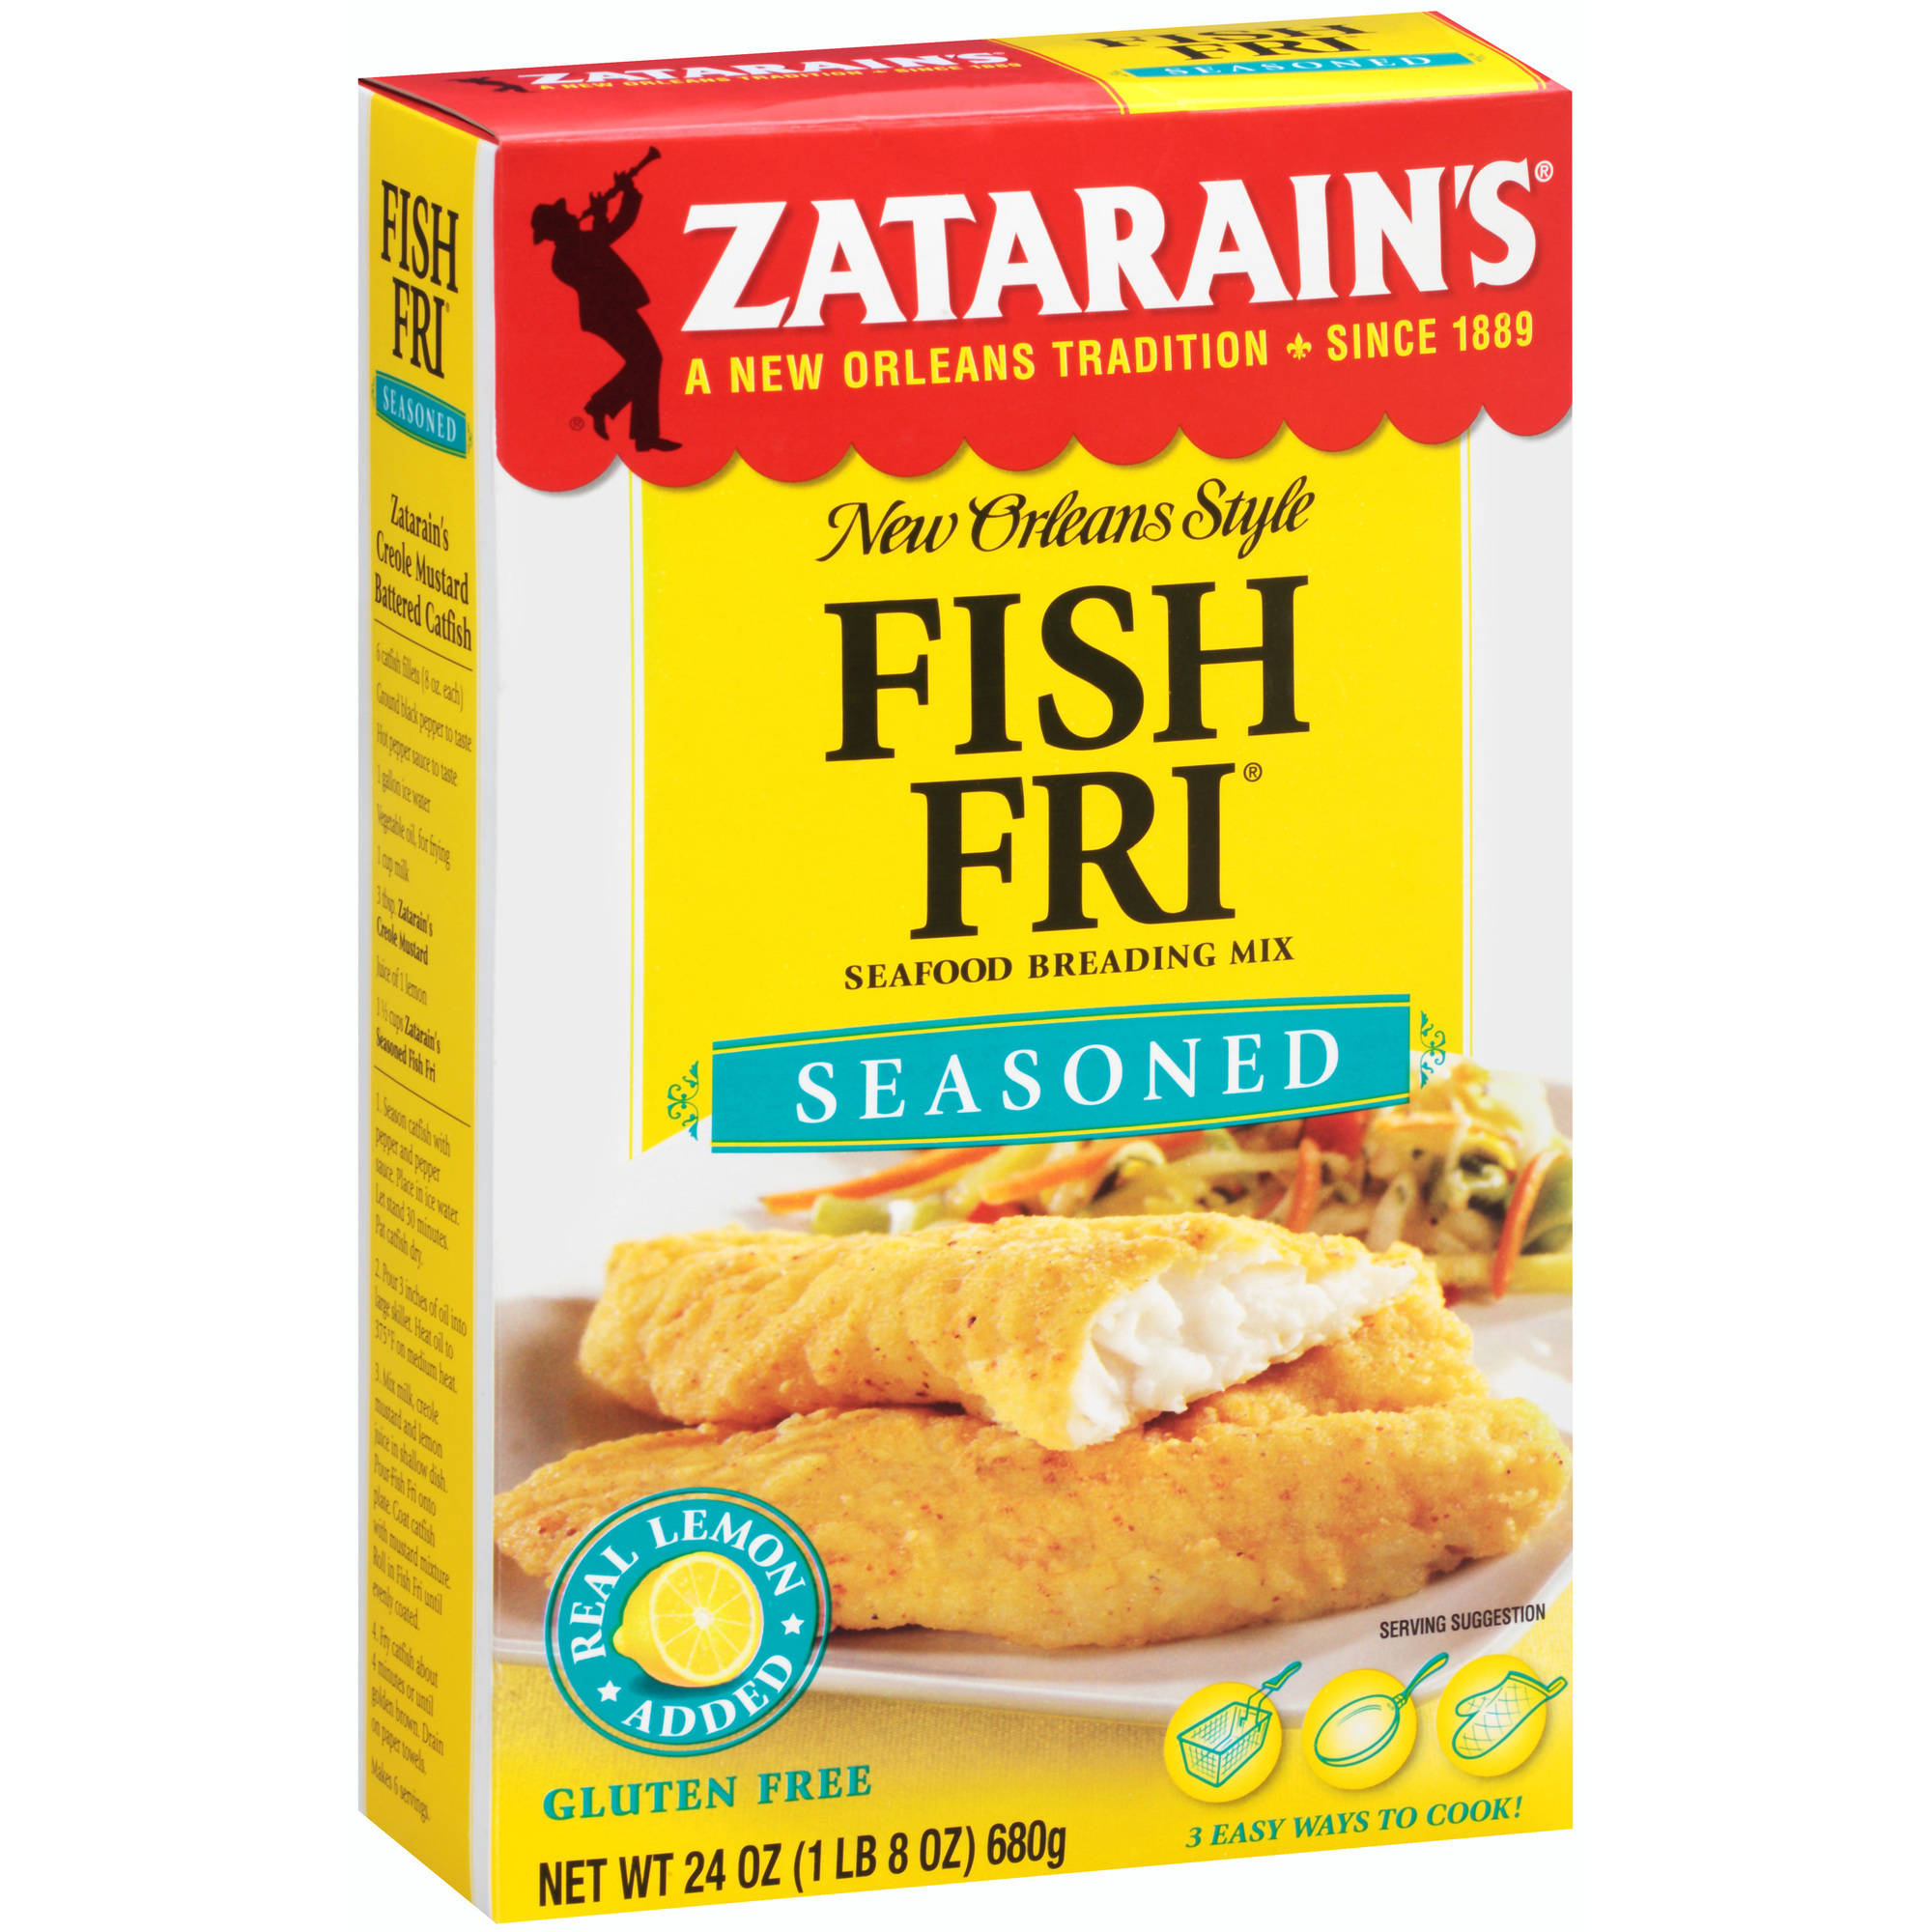 Zatarain's Fish Fri Seasoned Seafood Breading Mix, 24 oz